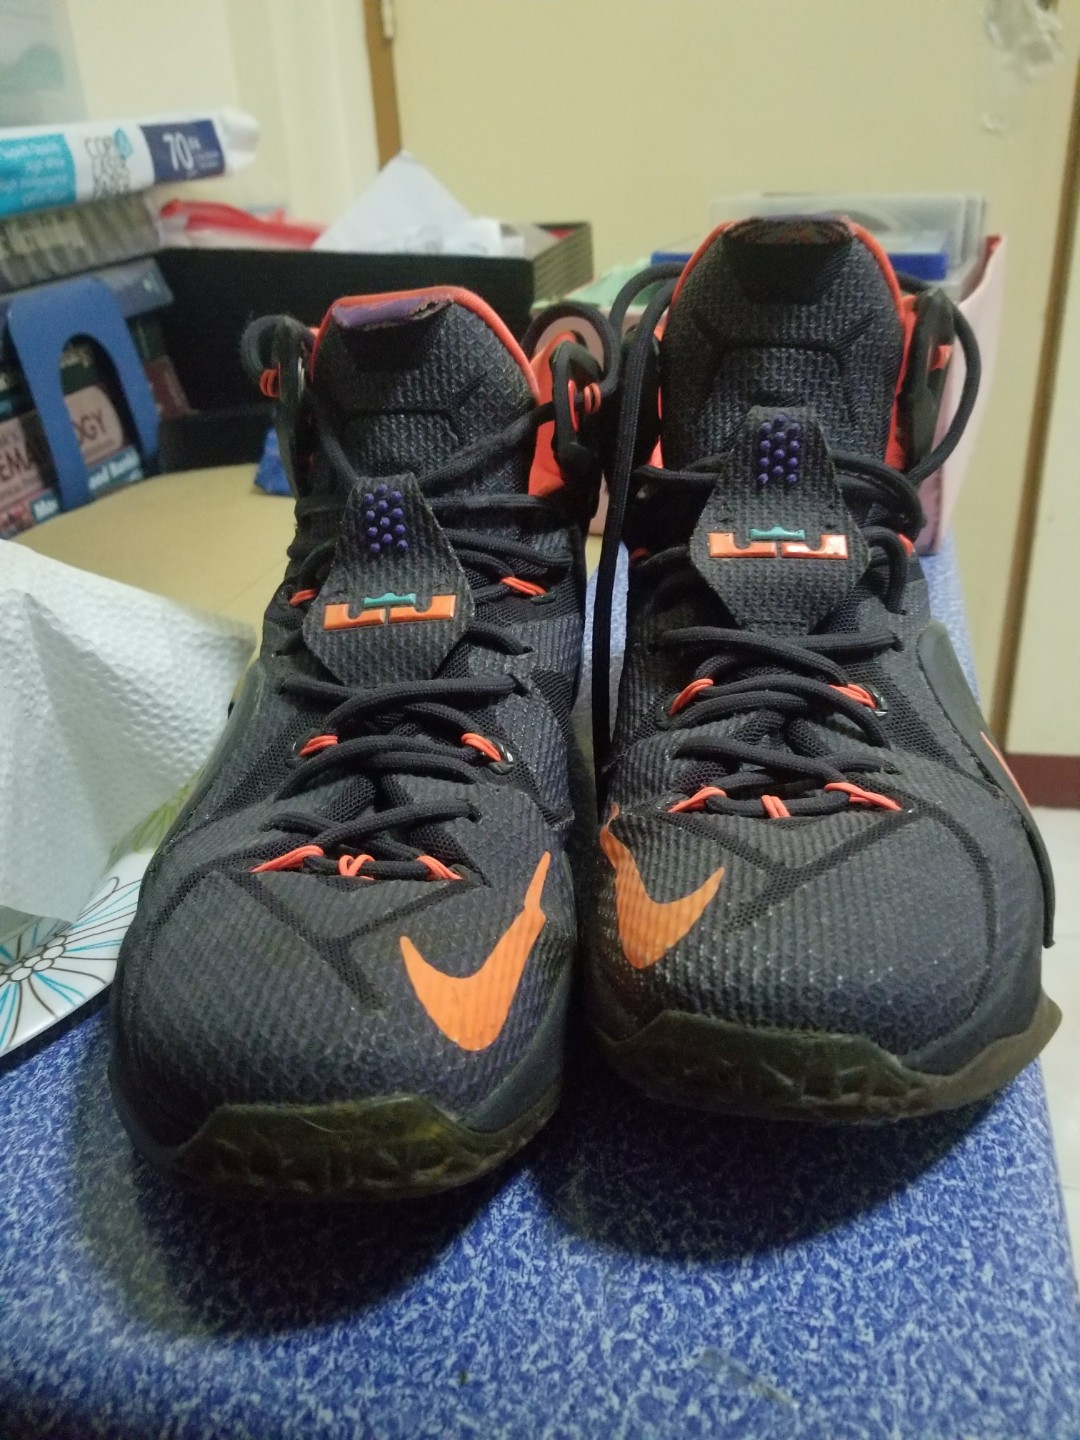 416e4f035c42 ... france nike lebron 12 instinct size us 8.5 mens fashion footwear on  carousell 0b151 c47ef